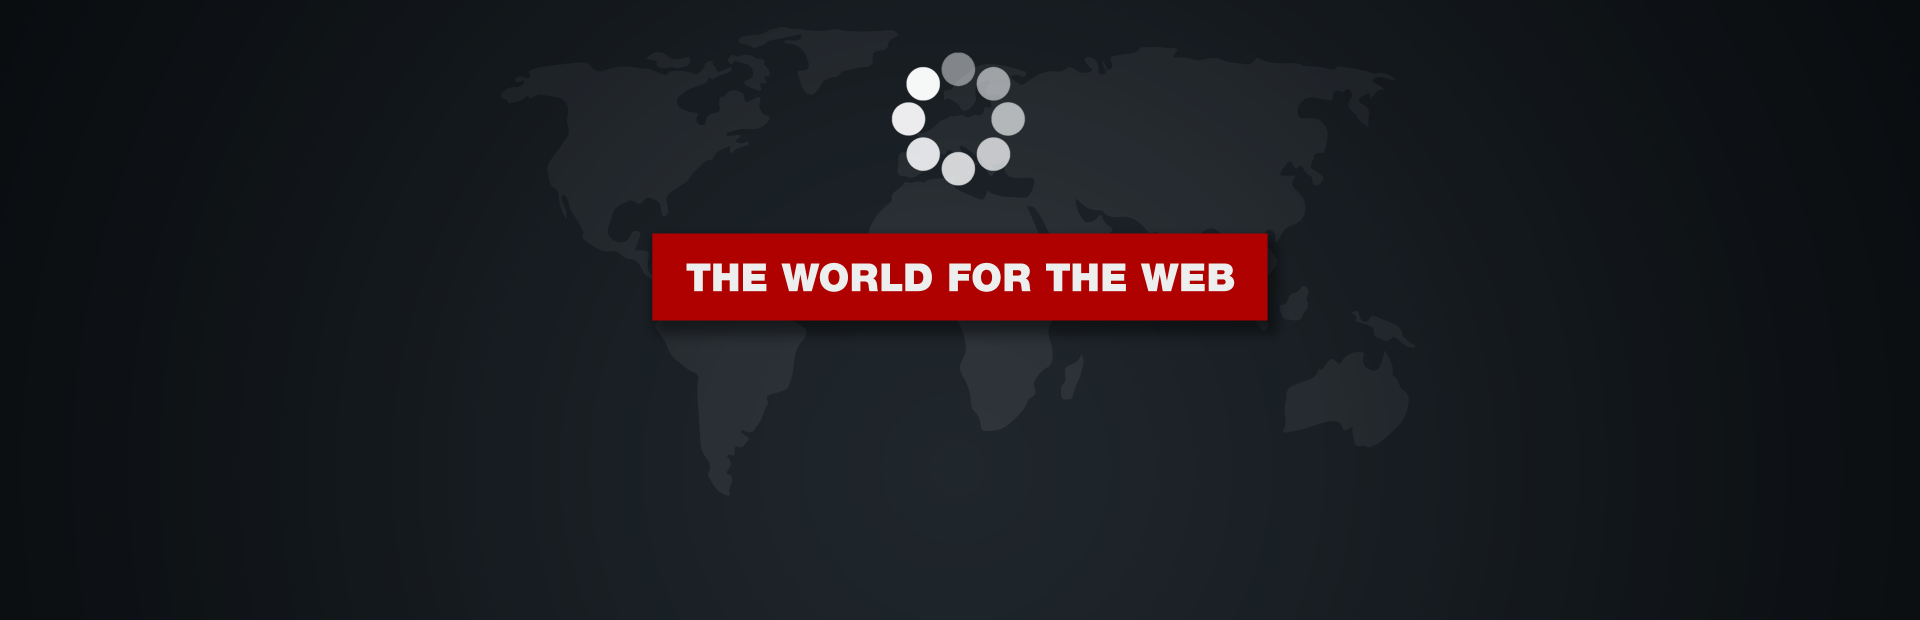 World for the web